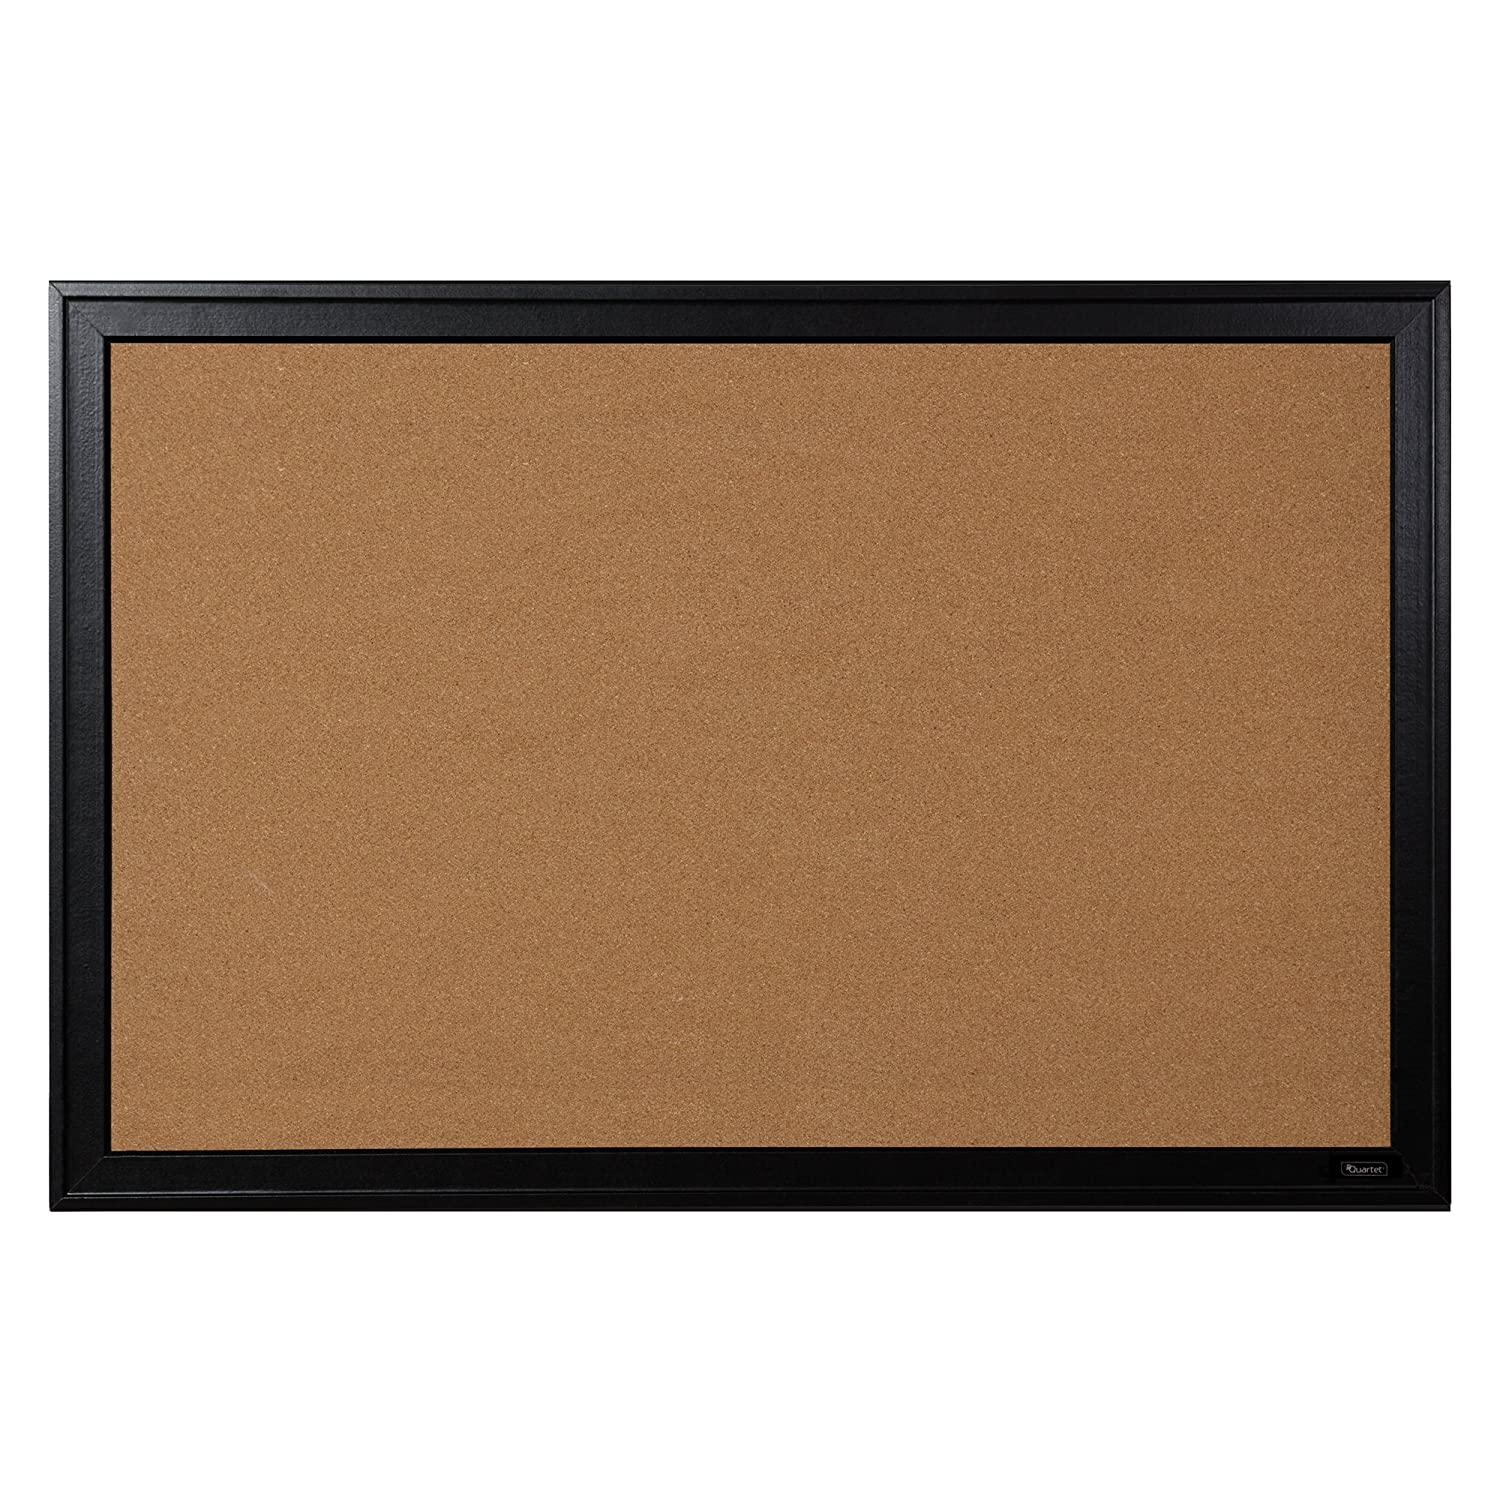 Quartet Bulletin Board, Cork, 24x36, Black Frame (13769) 24x36 ACCO Brands